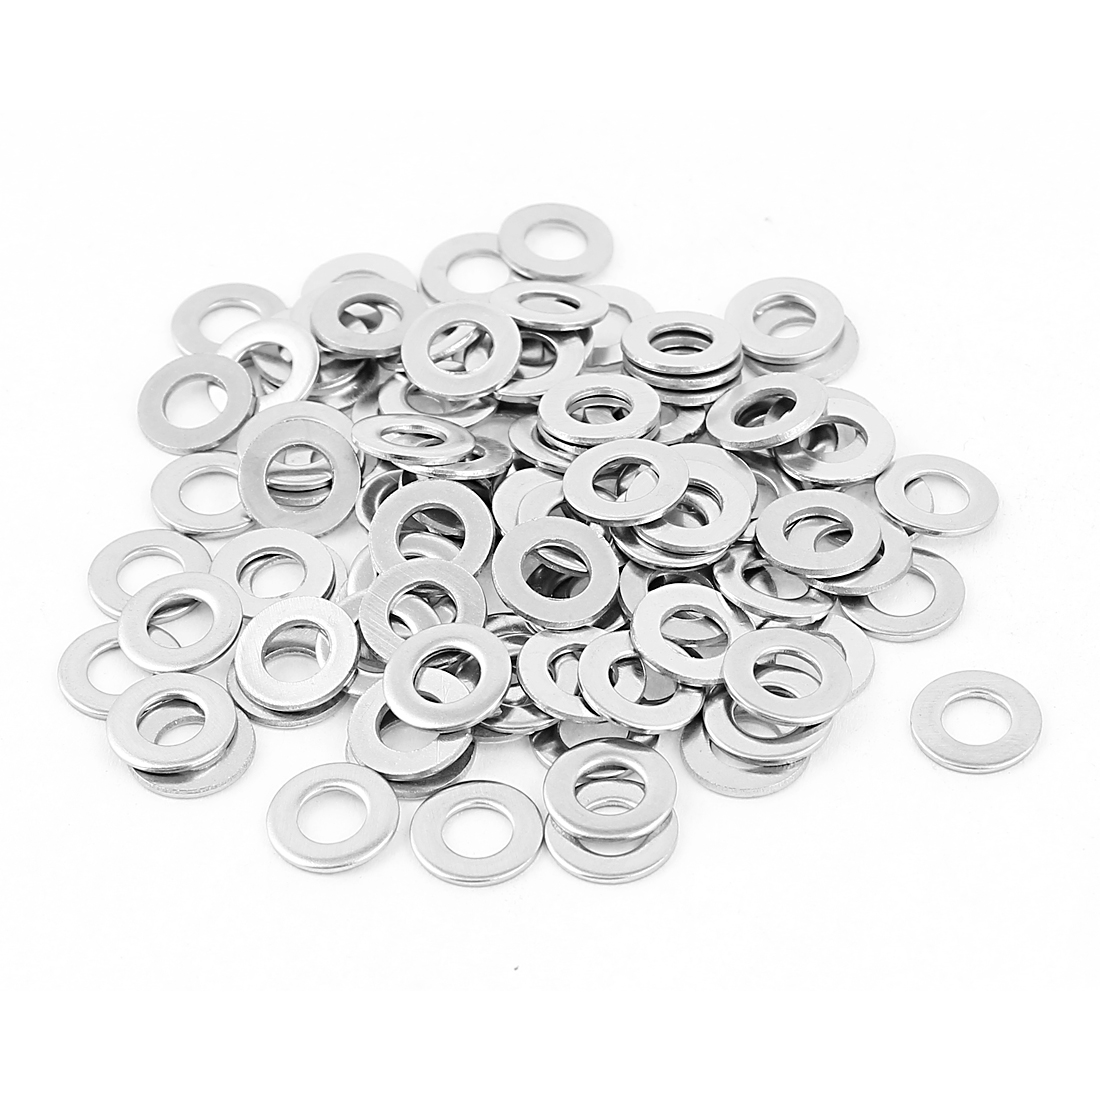 100Pcs M5 x 10mm x 1mm 304 Stainless Steel Flat Washer for Screw Bolt